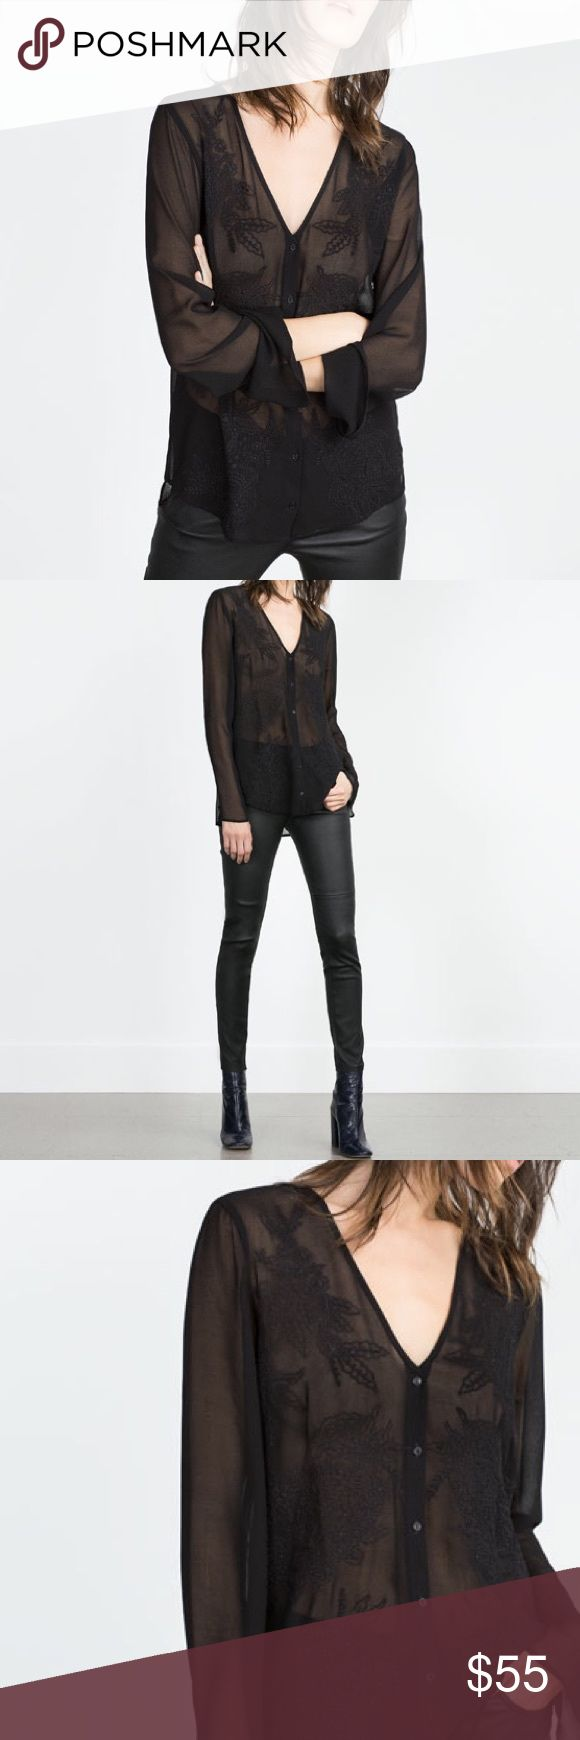 Zara Sheer Black Blouse 75